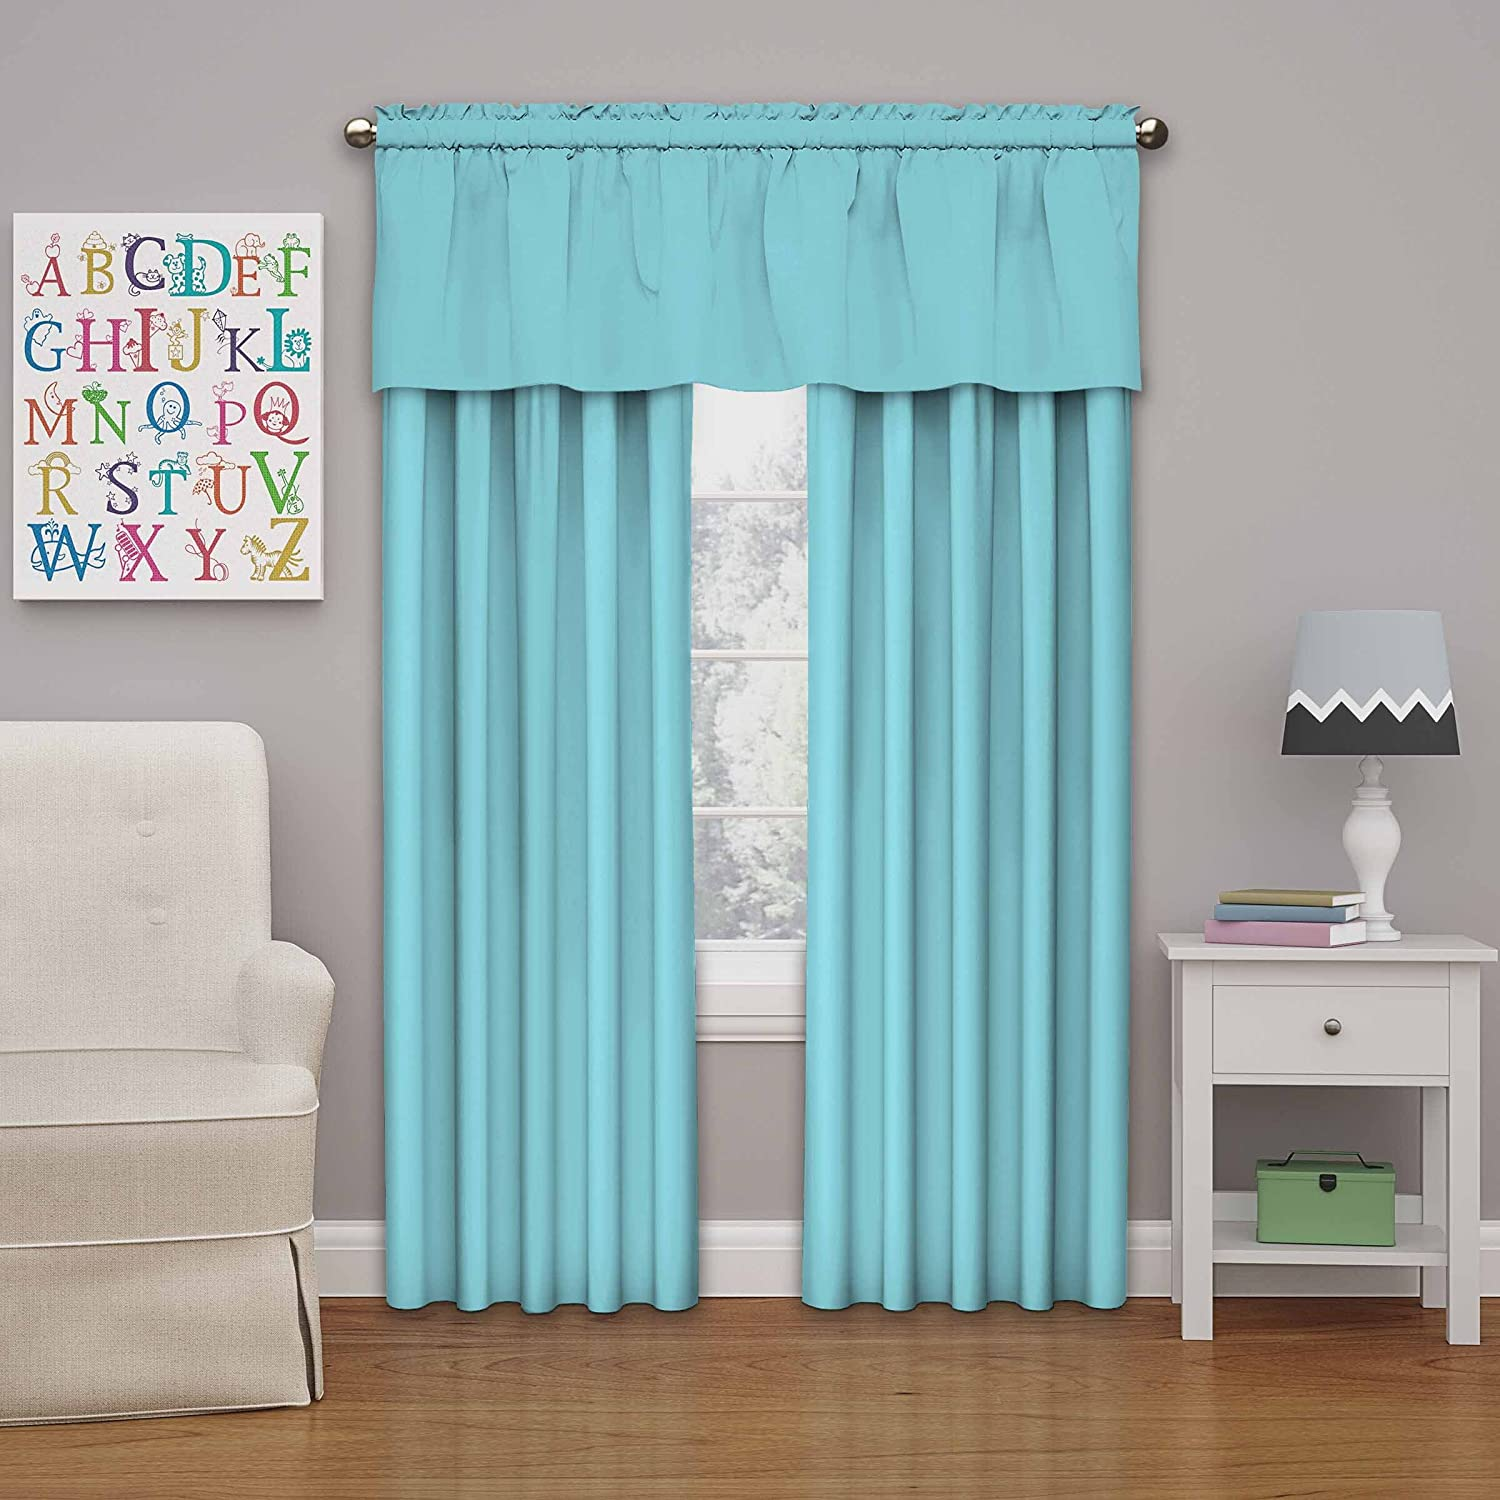 Eclipse Kids Microfiber Blackout Window Curtain Panel Ivory 84 42x84 84 42x84 Ellery Homestyles 13303042X084IVY